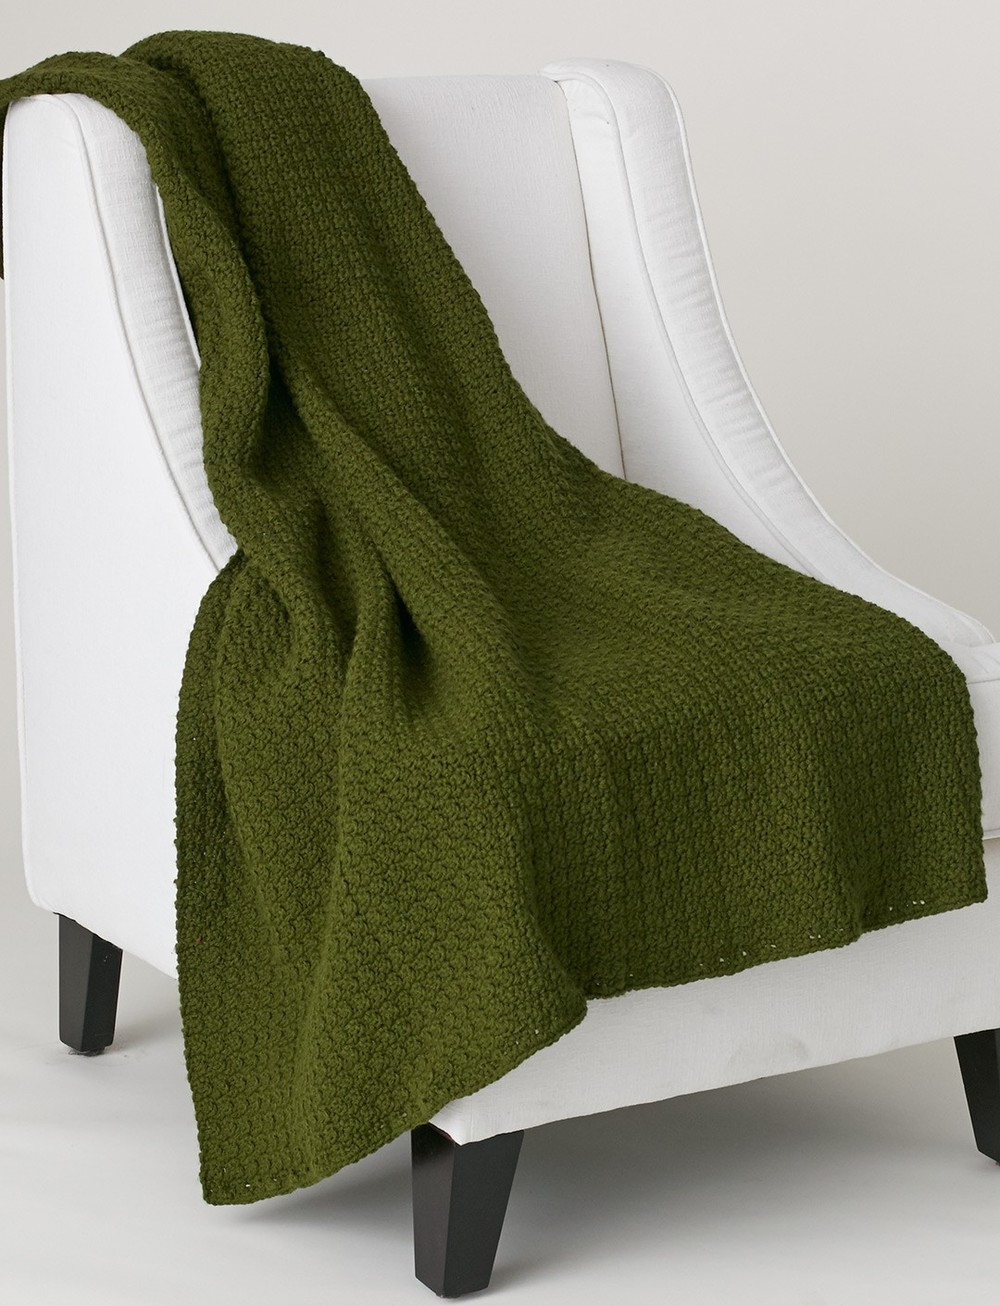 New Evergreen Crochet Throw All Free Crochet Patterns Of Wonderful 50 Pictures All Free Crochet Patterns